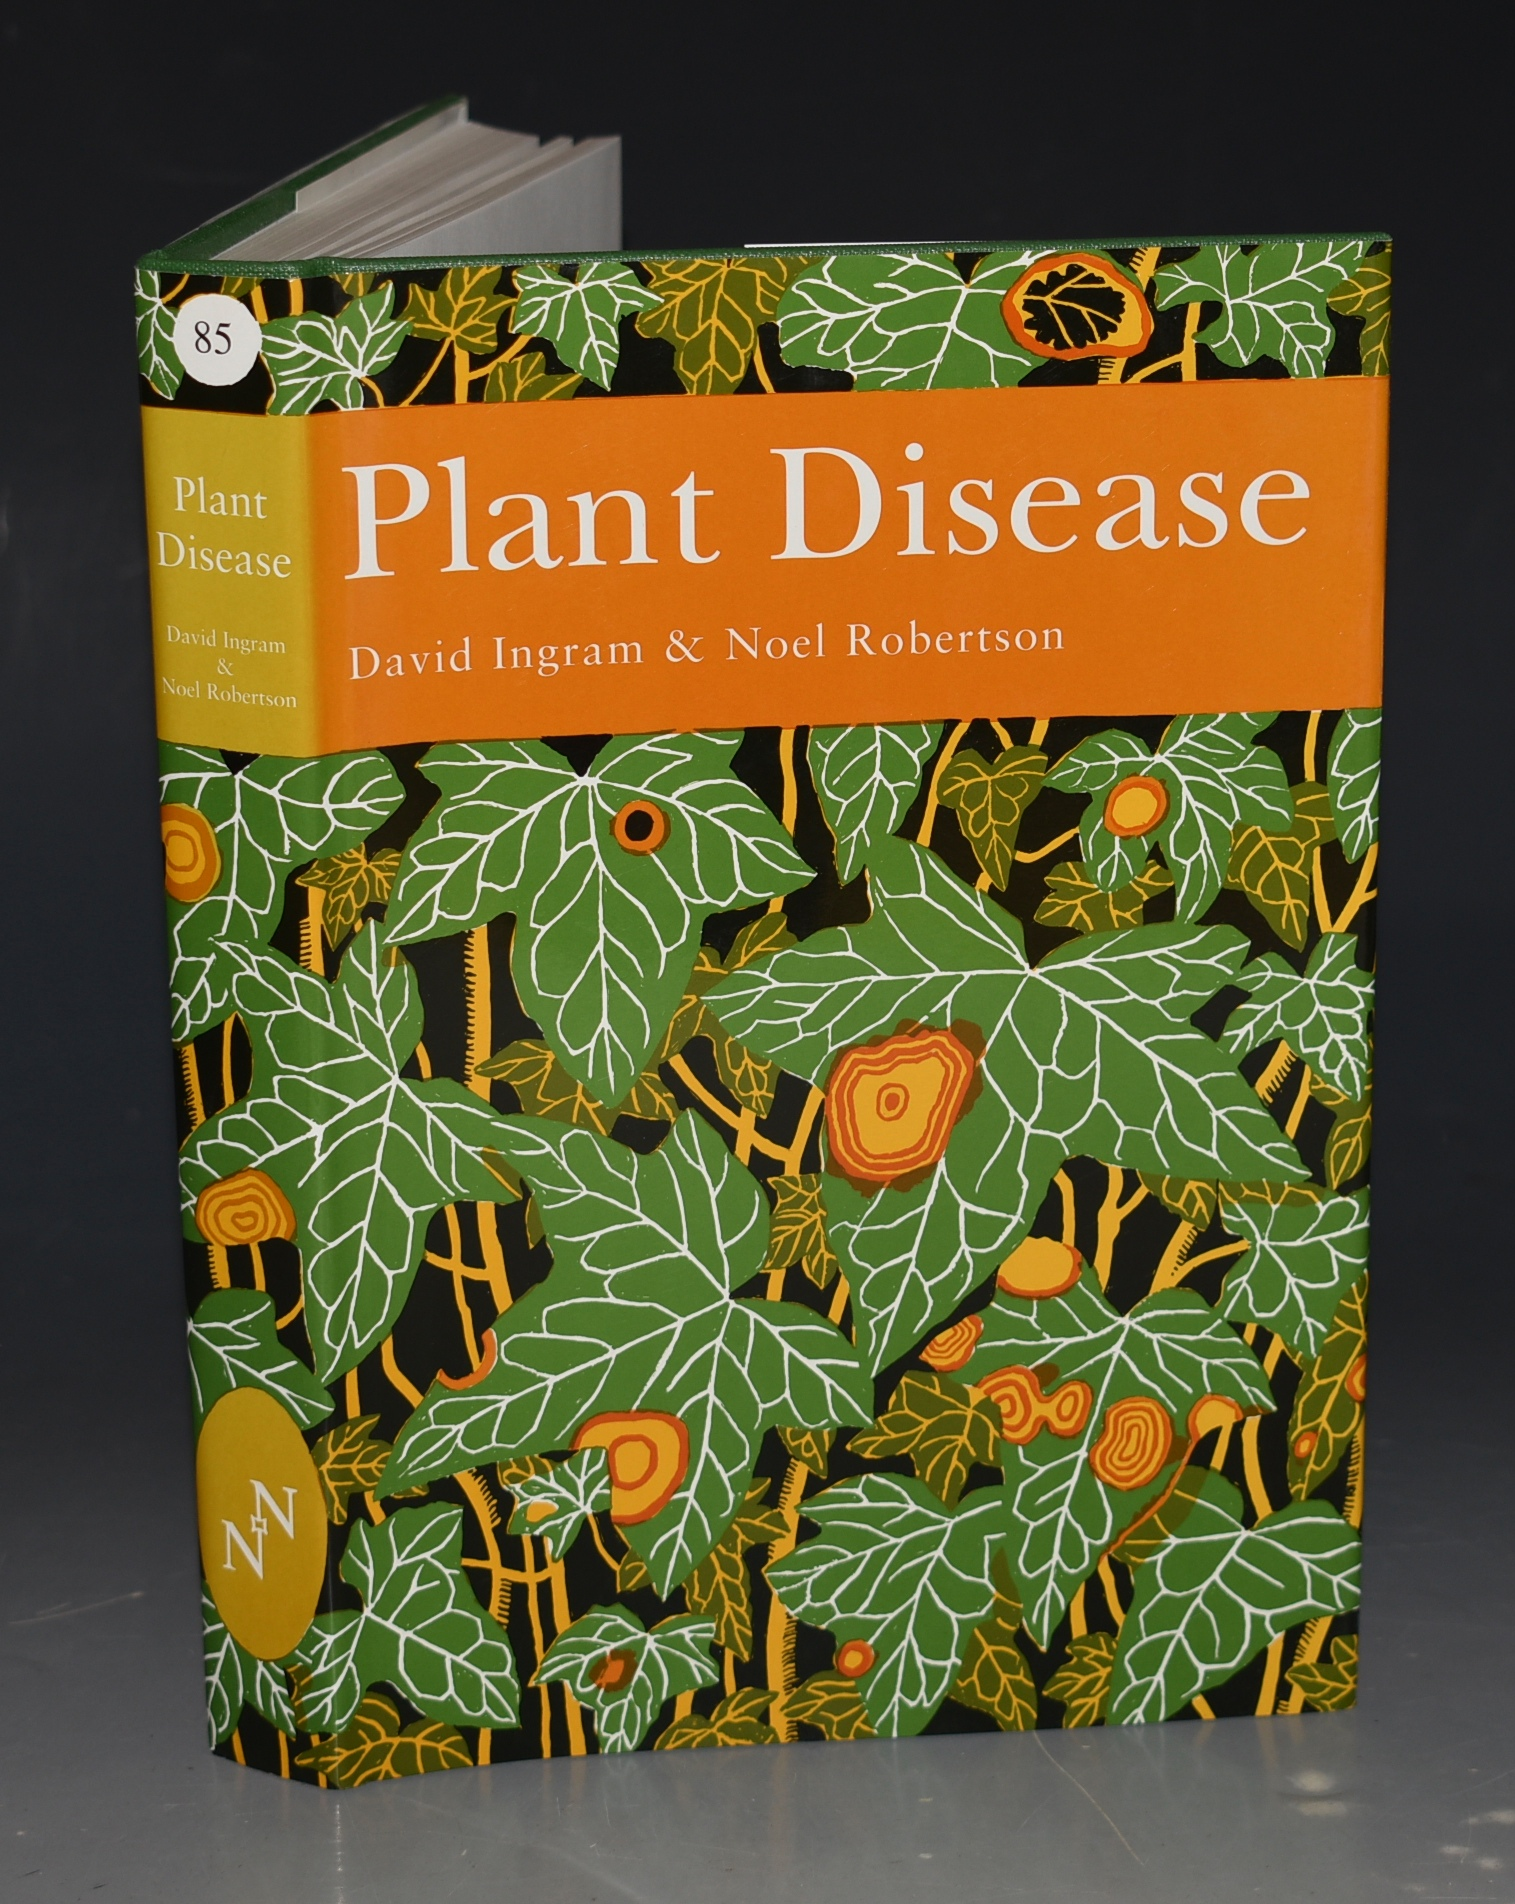 Image for Plant Disease. (The New Naturalist 85).